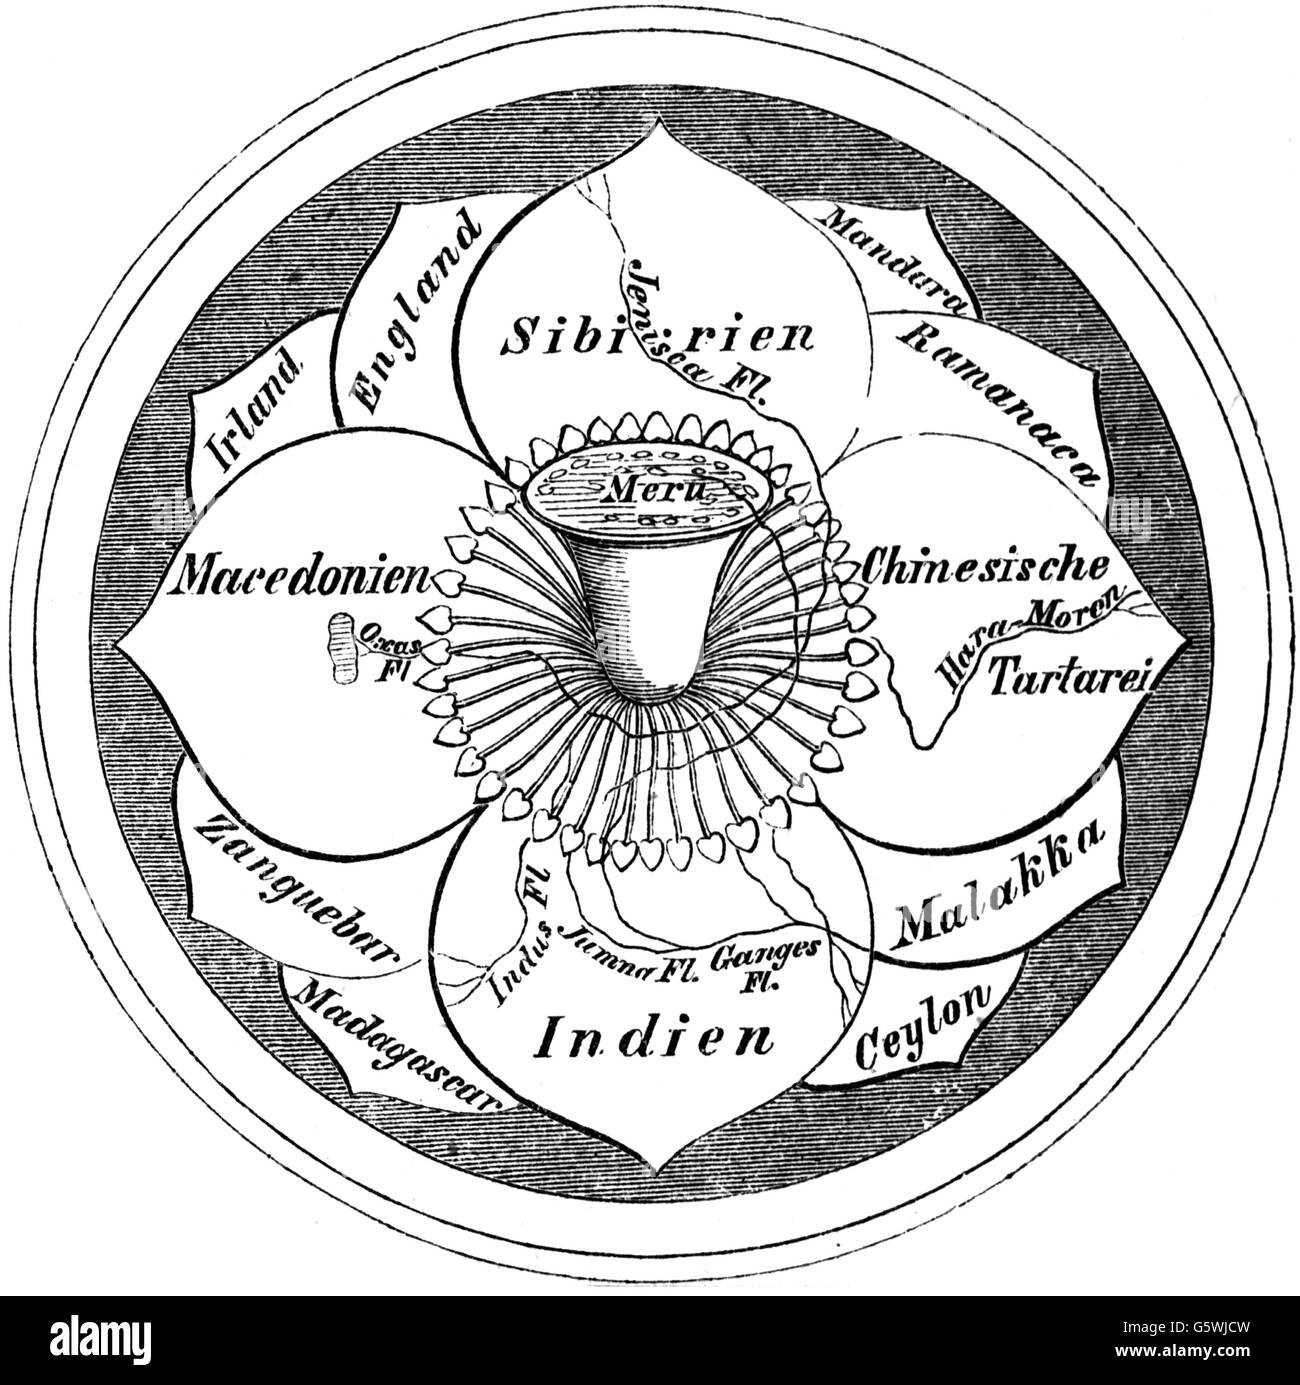 cartography, world map, Hindo world map, the world as a blossom with the mount Meru in the centre, wood engraving, - Stock Image